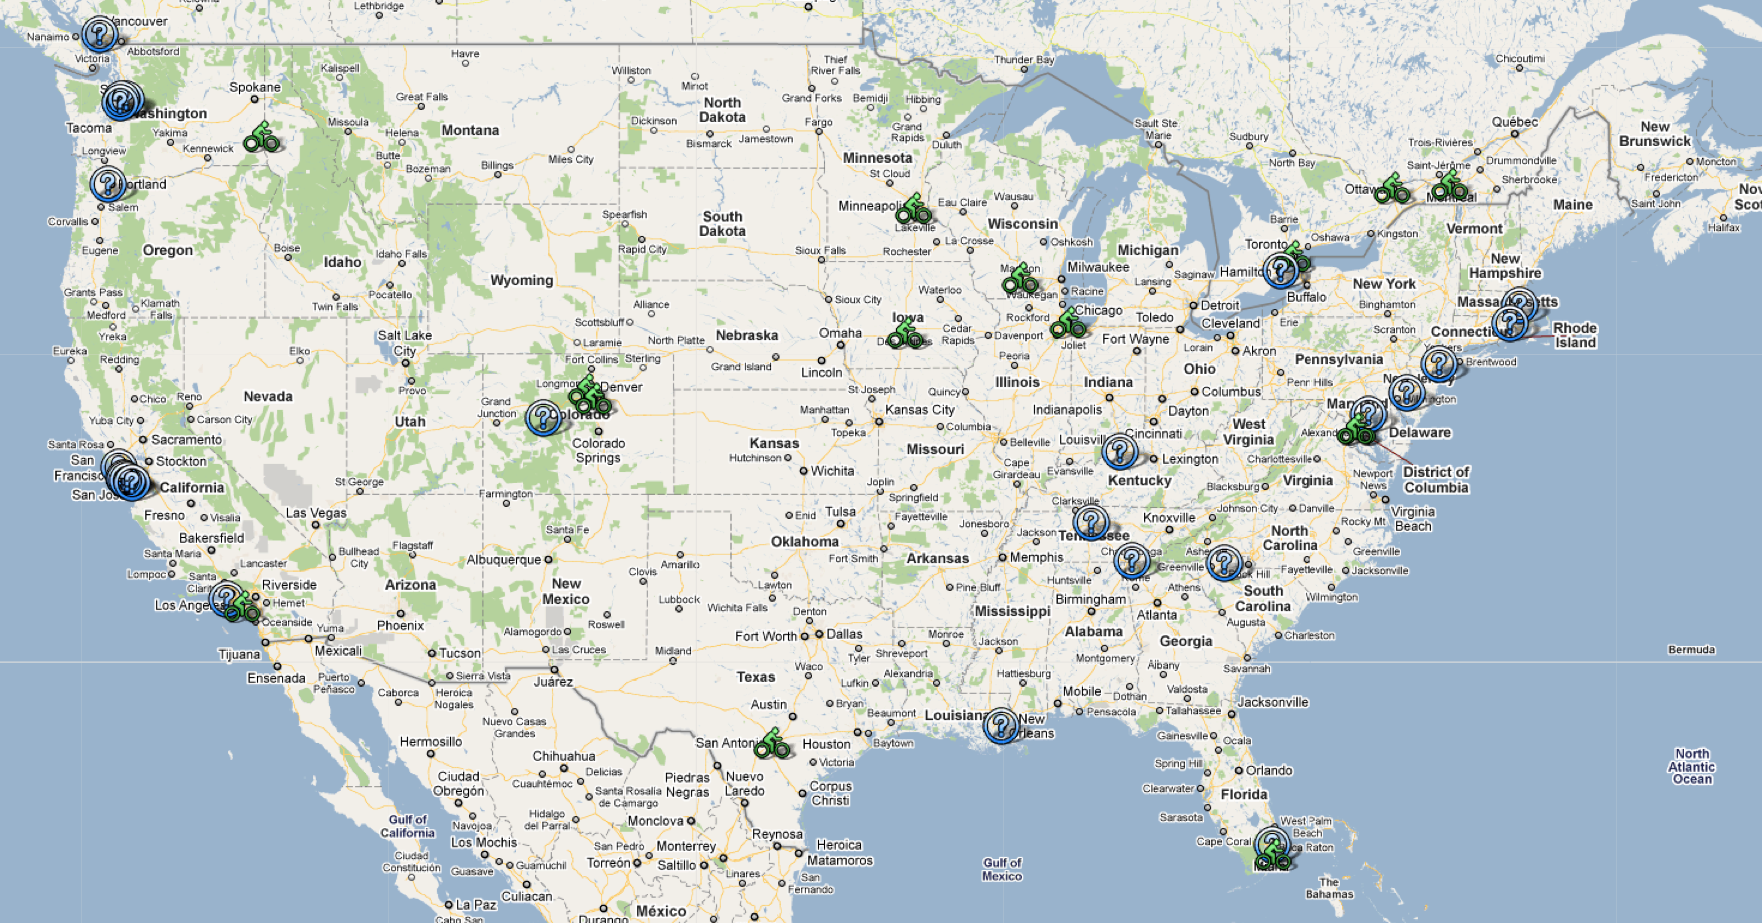 U.S. map showing all current and possible bike share programs (The Bike-sharing Blog)